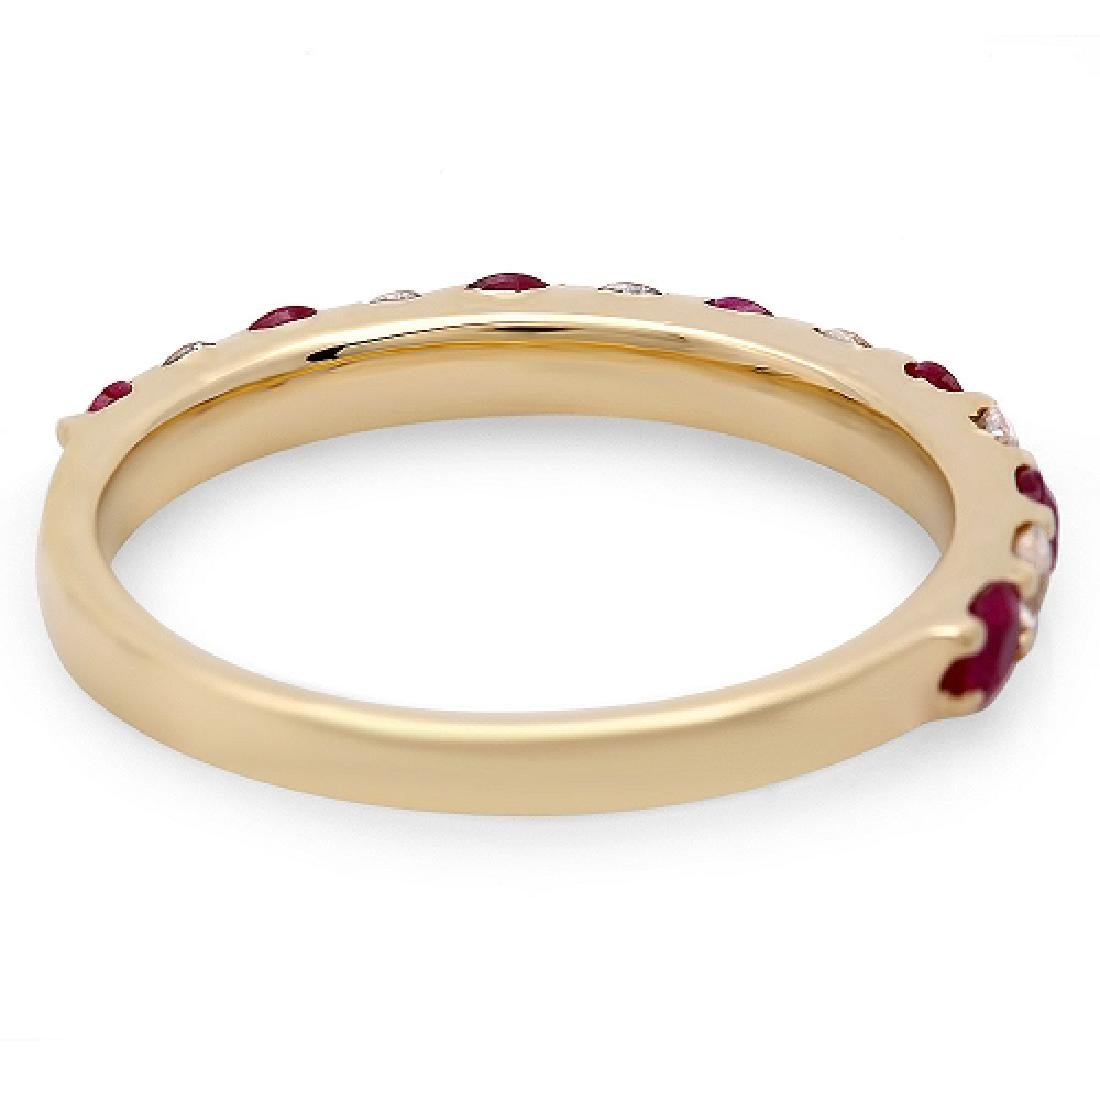 0.85Carat Natural Ruby 18K Solid Yellow Gold Diamond - 2